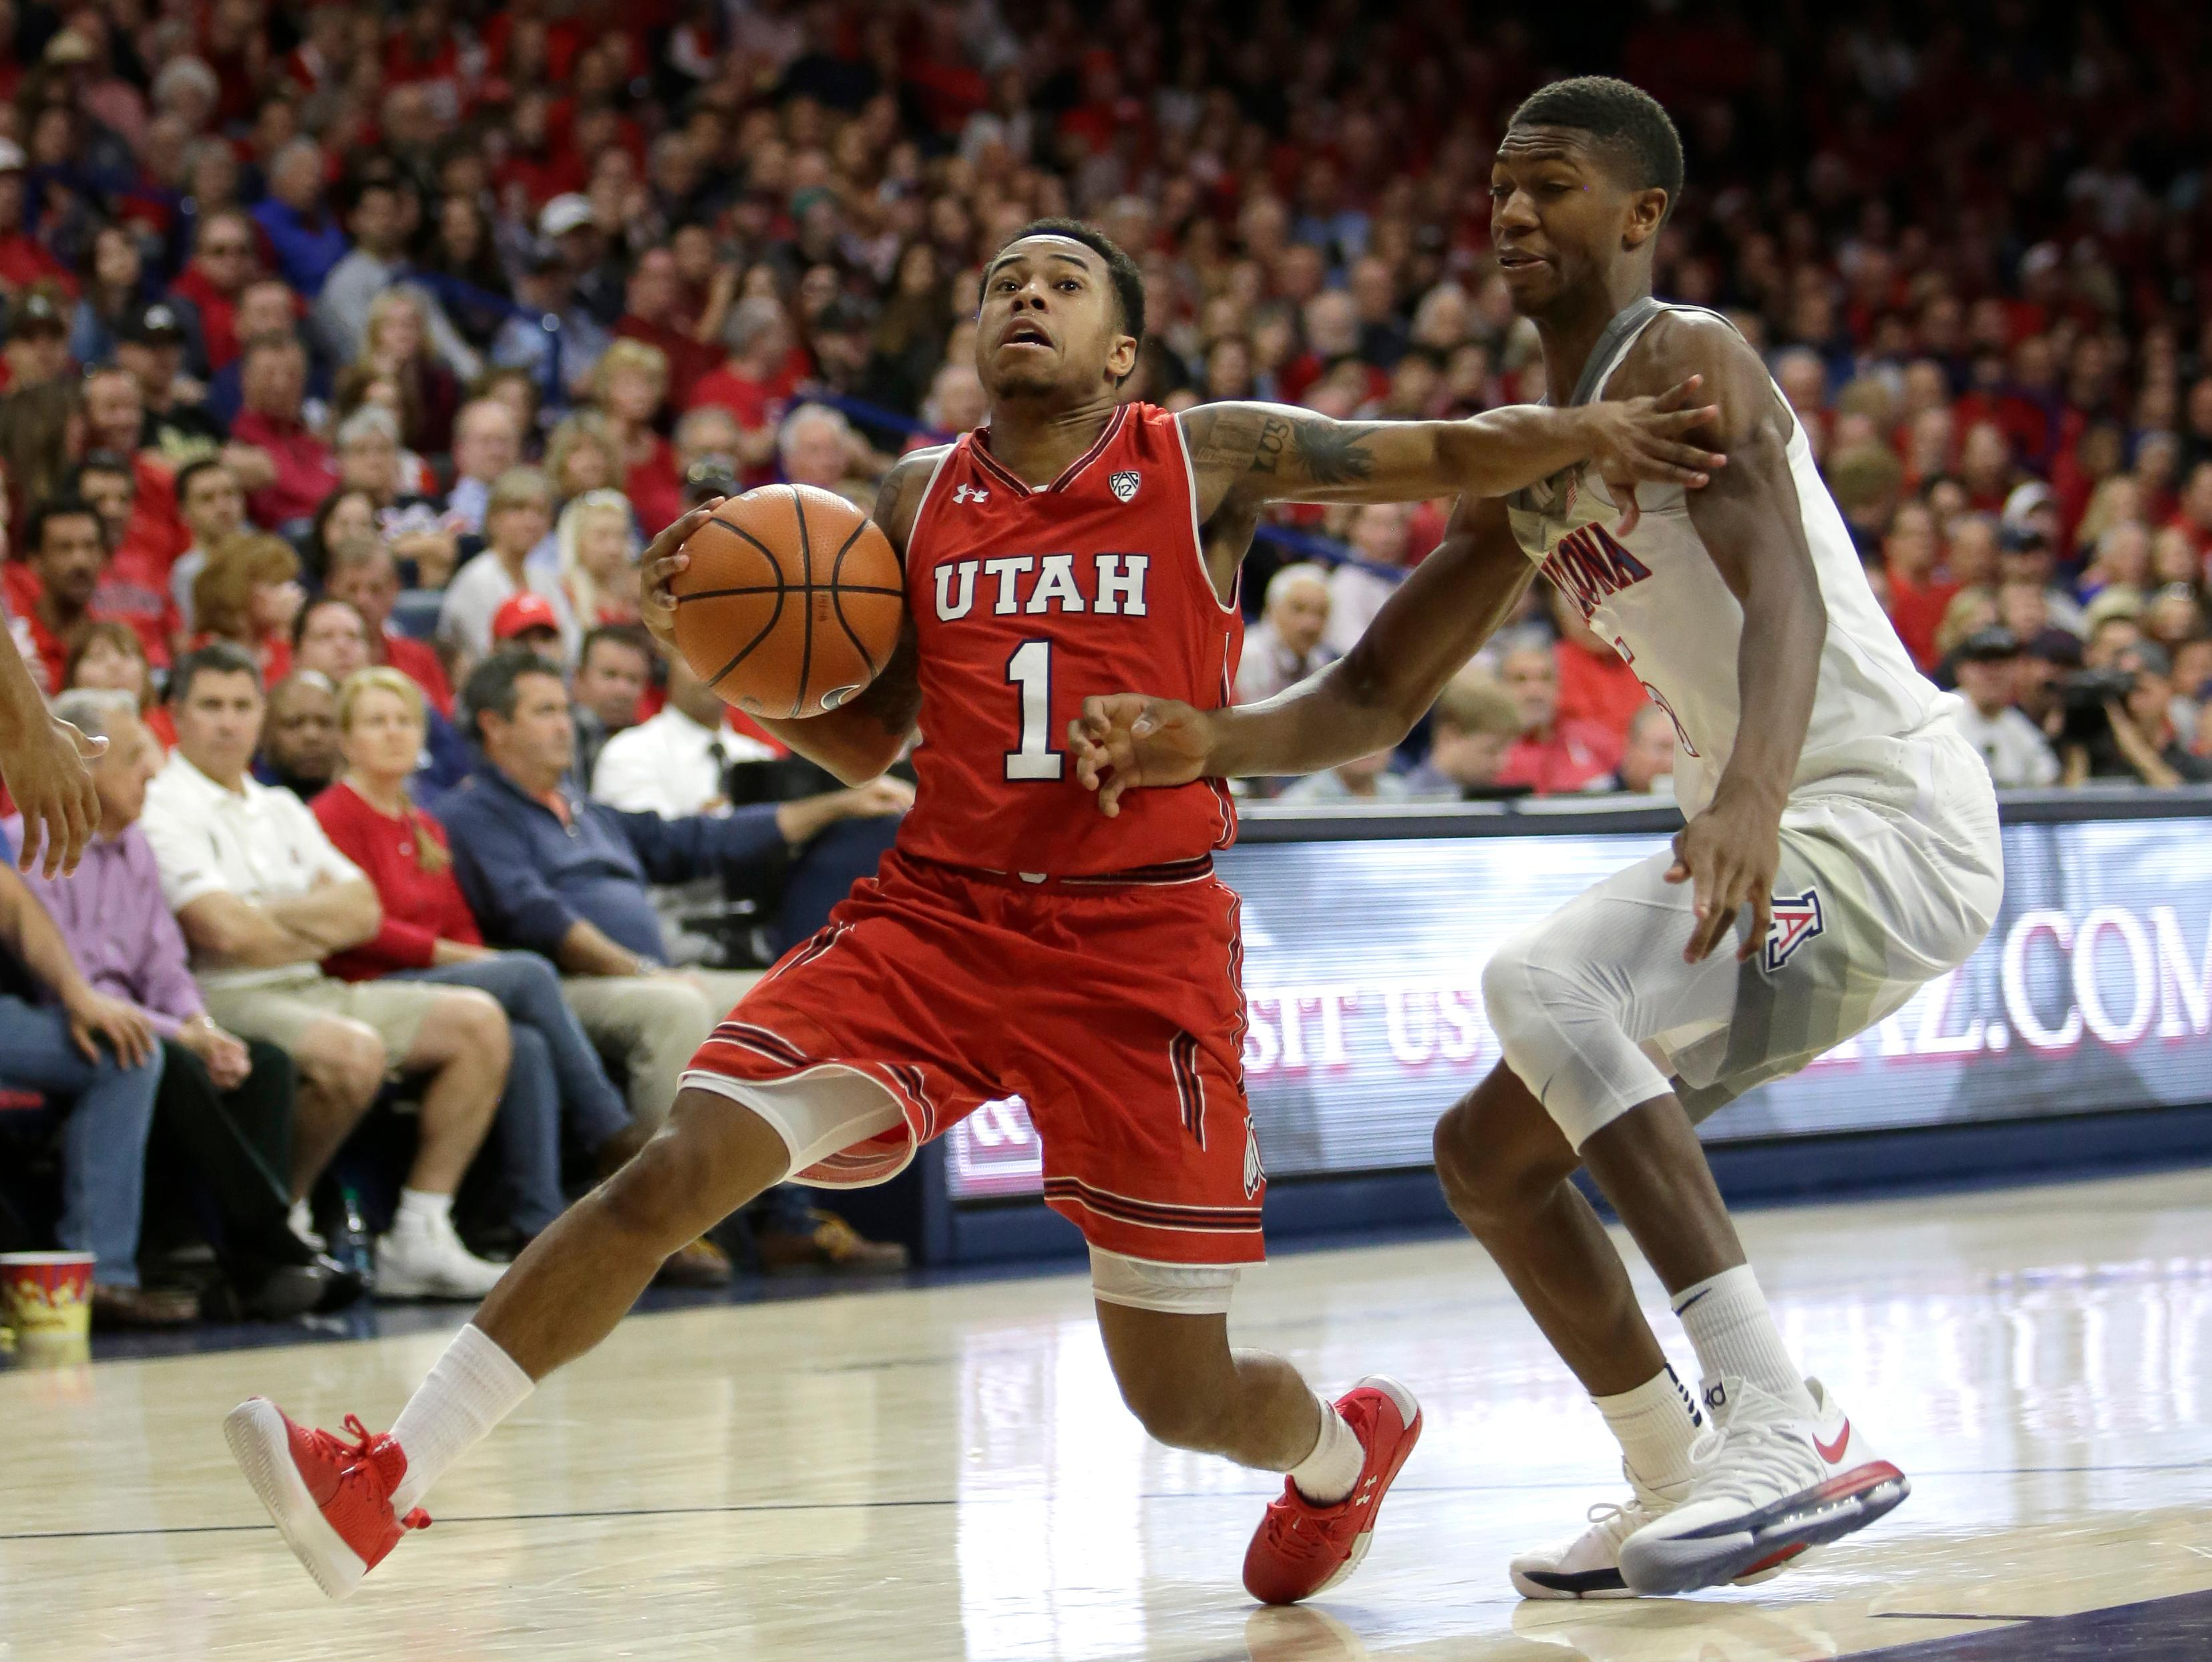 Utah guard Justin Bibbins (1) drives past Arizona forward Keanu Pinder in the first half during an NCAA college basketball game, Saturday, Jan. 27, 2018, in Tucson, Ariz. (AP Photo/Rick Scuteri)